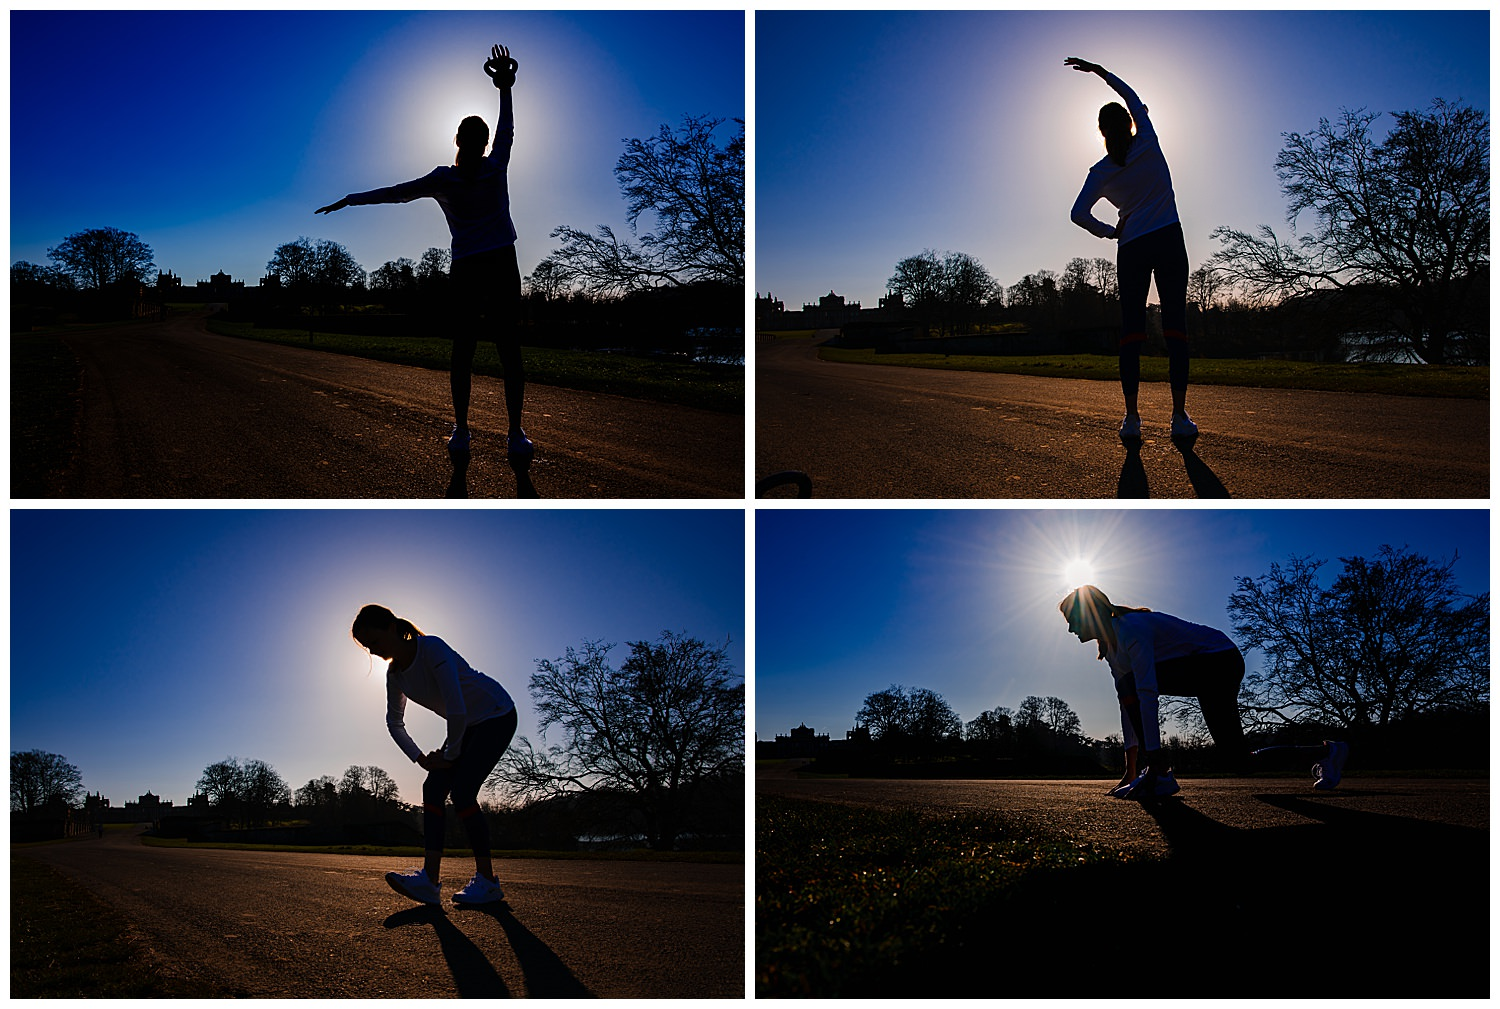 Montage of silhouette photos of a woman working out